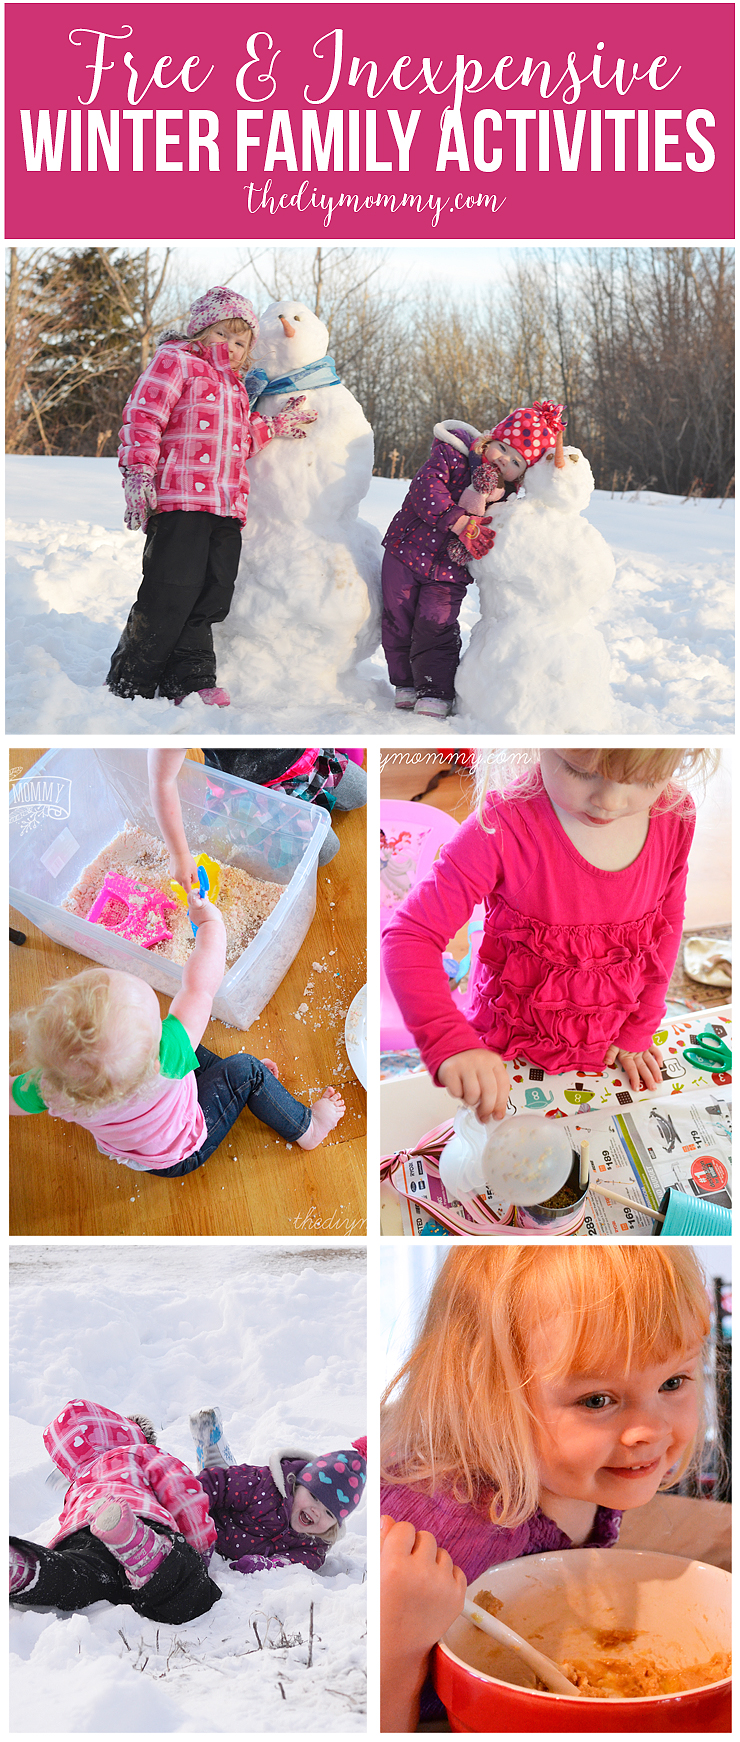 Tons of free winter family activity ideas!